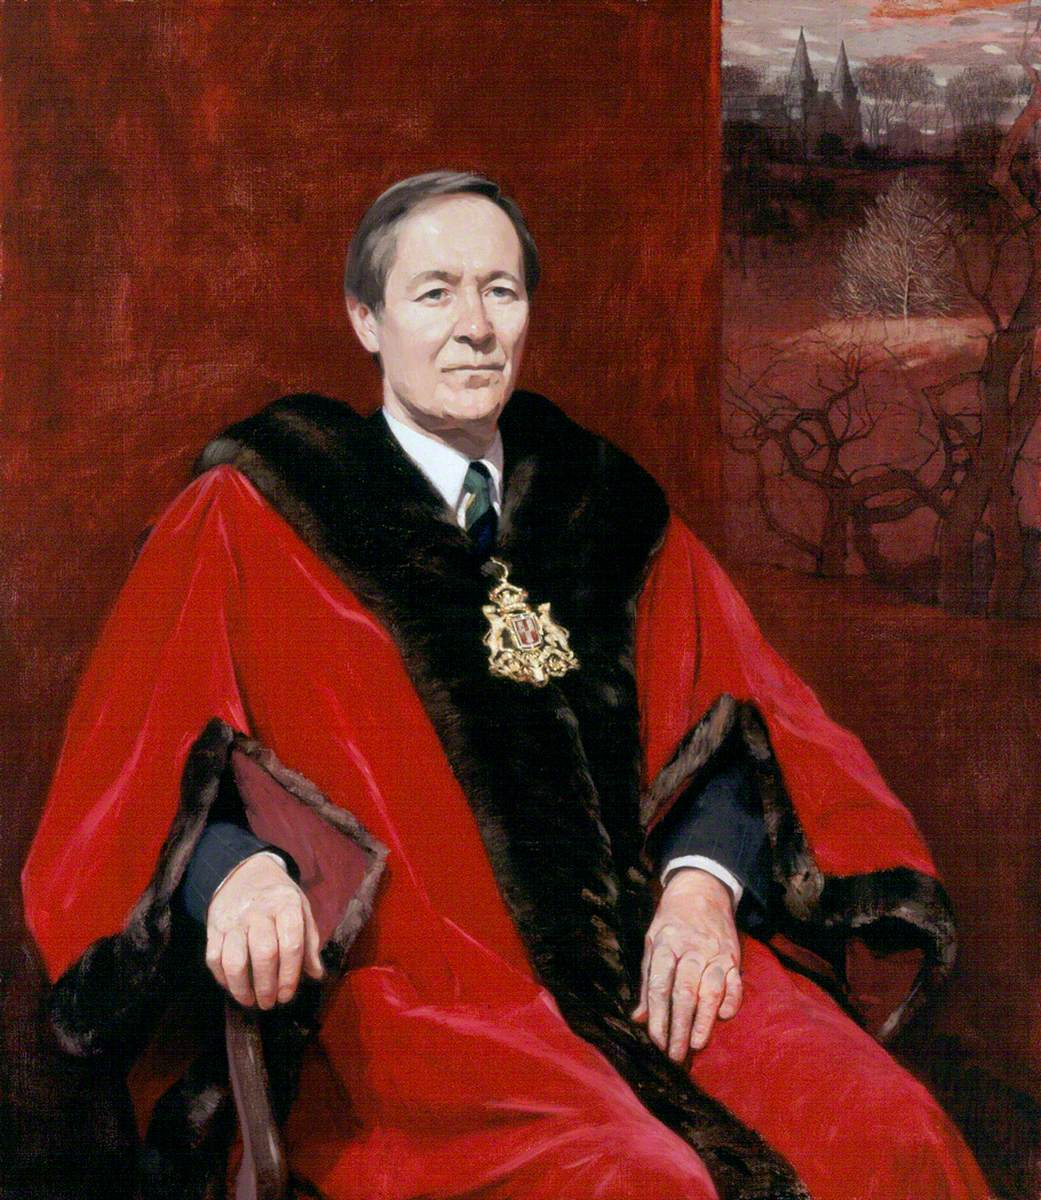 James Wyness, Lord Provost of Aberdeen